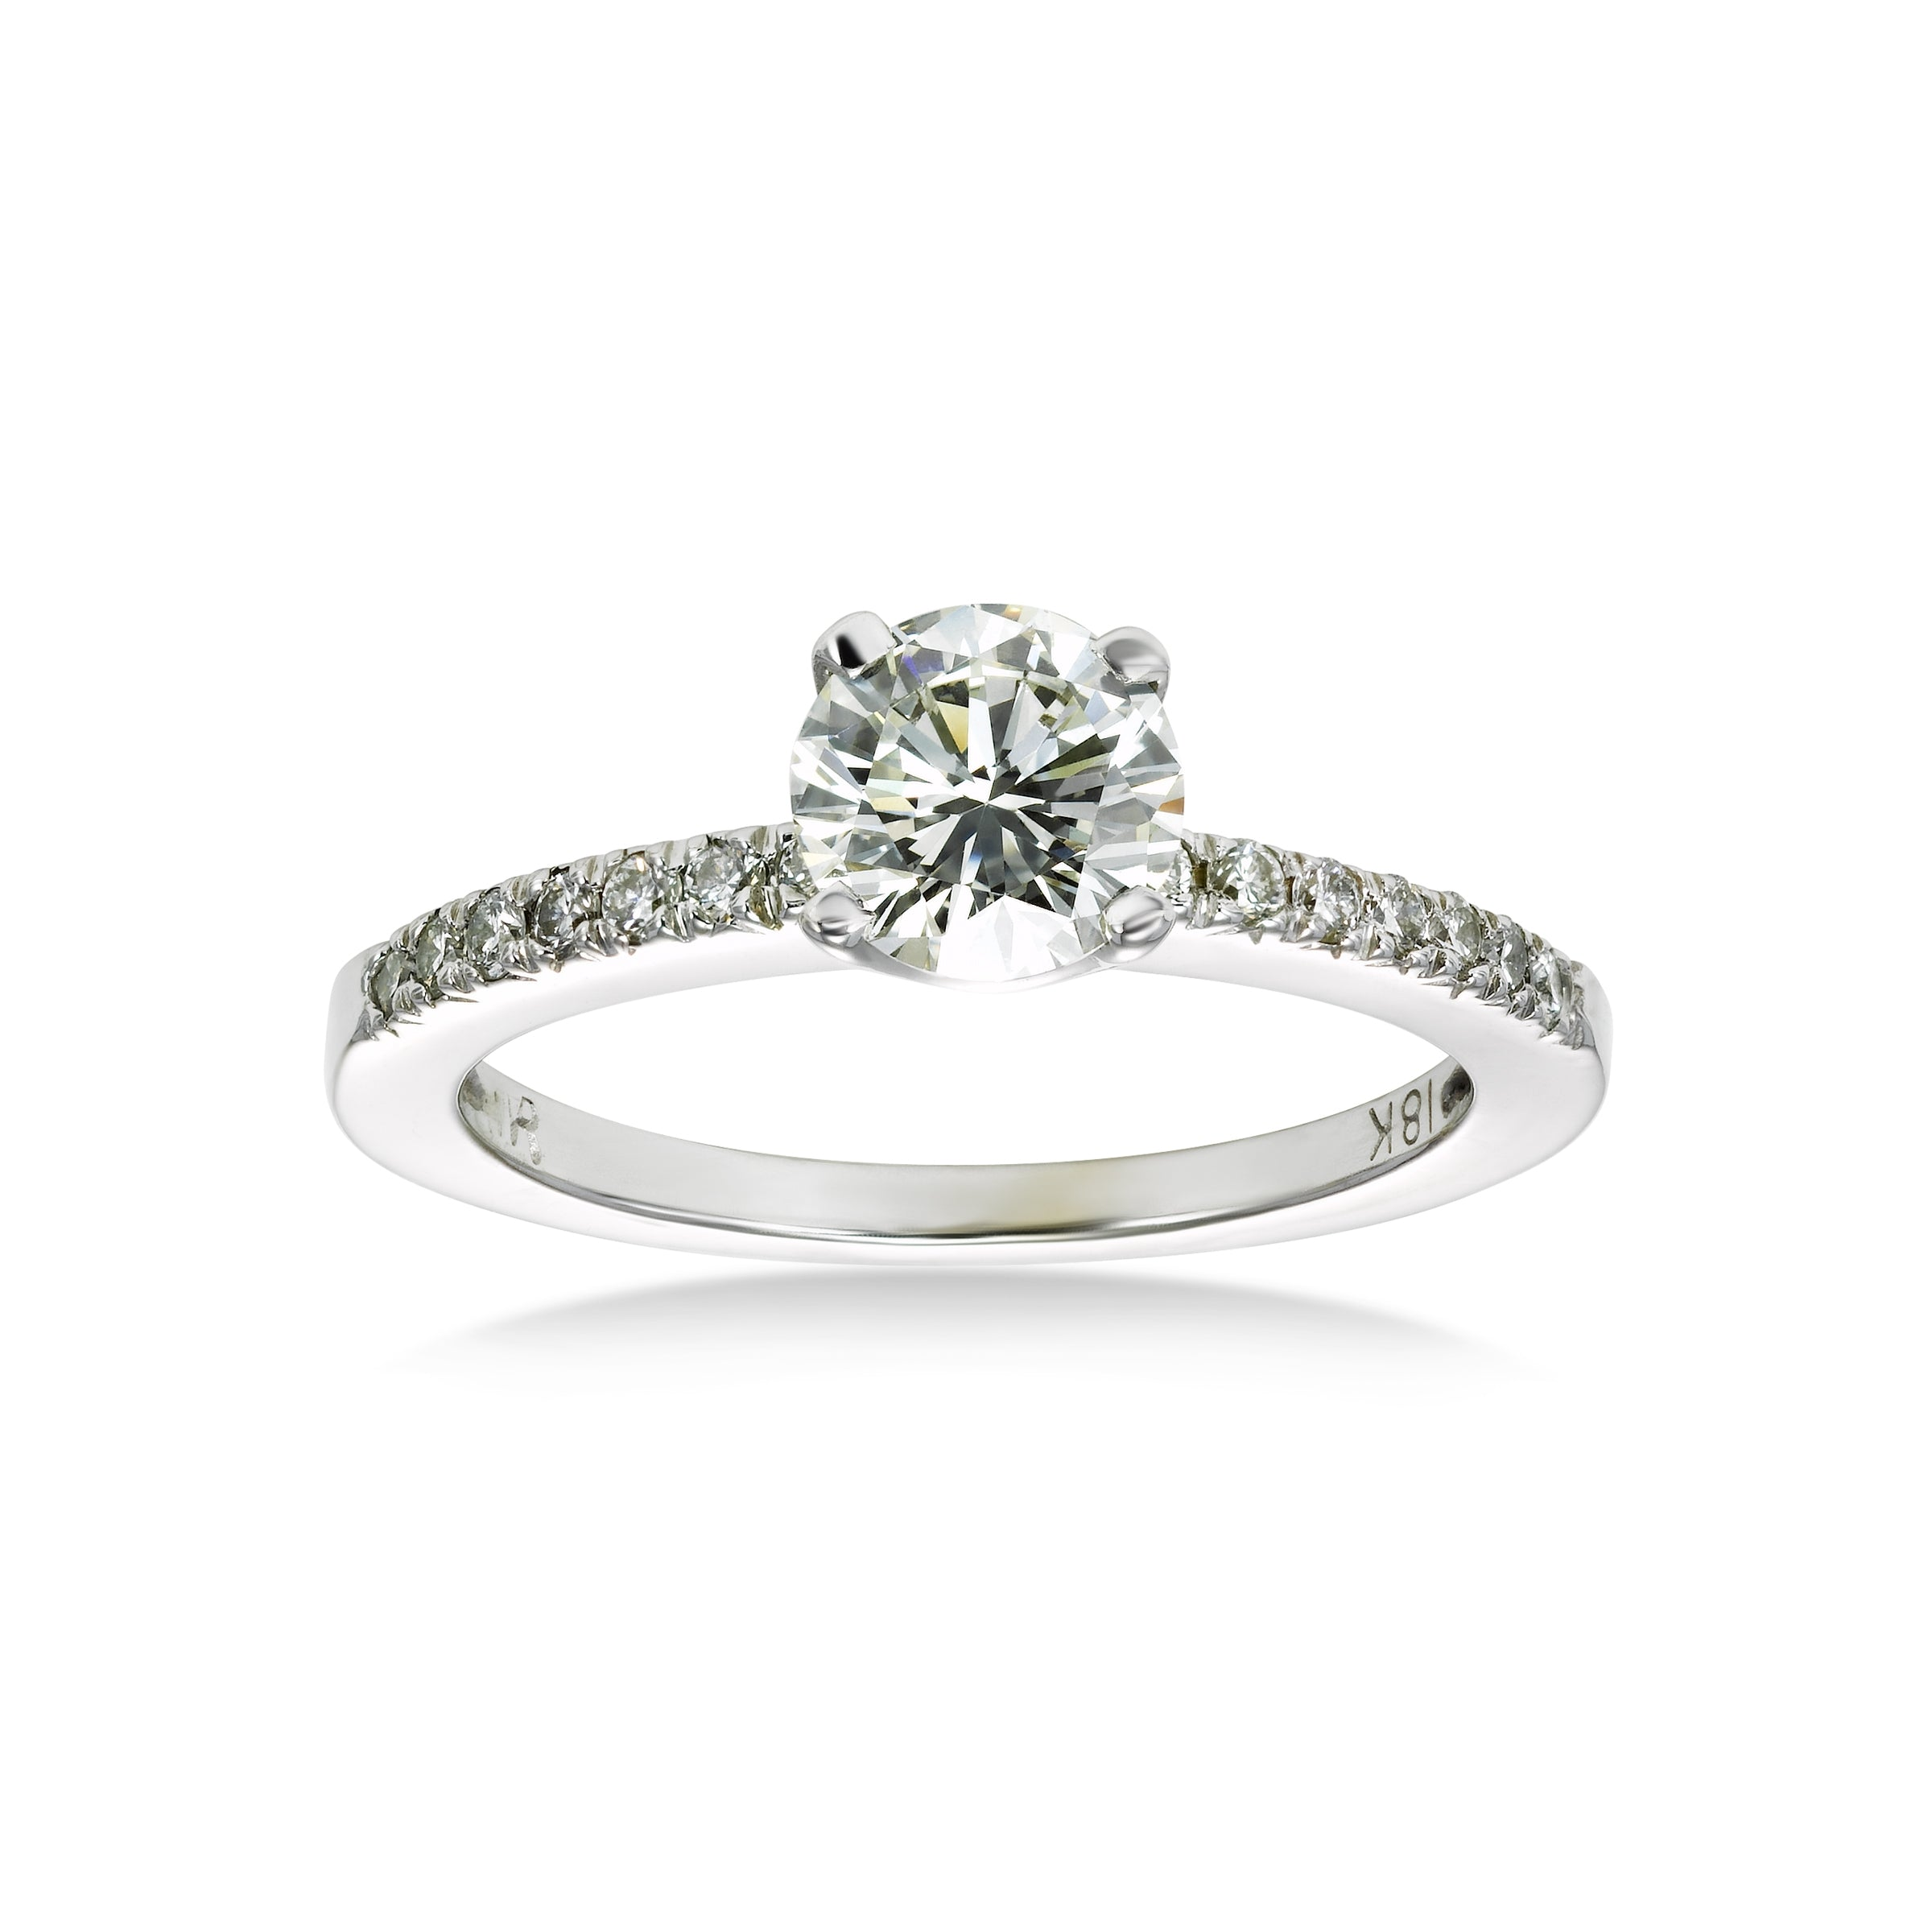 Round Diamond Engagement Ring, .79 Carat Center, 14K White Gold